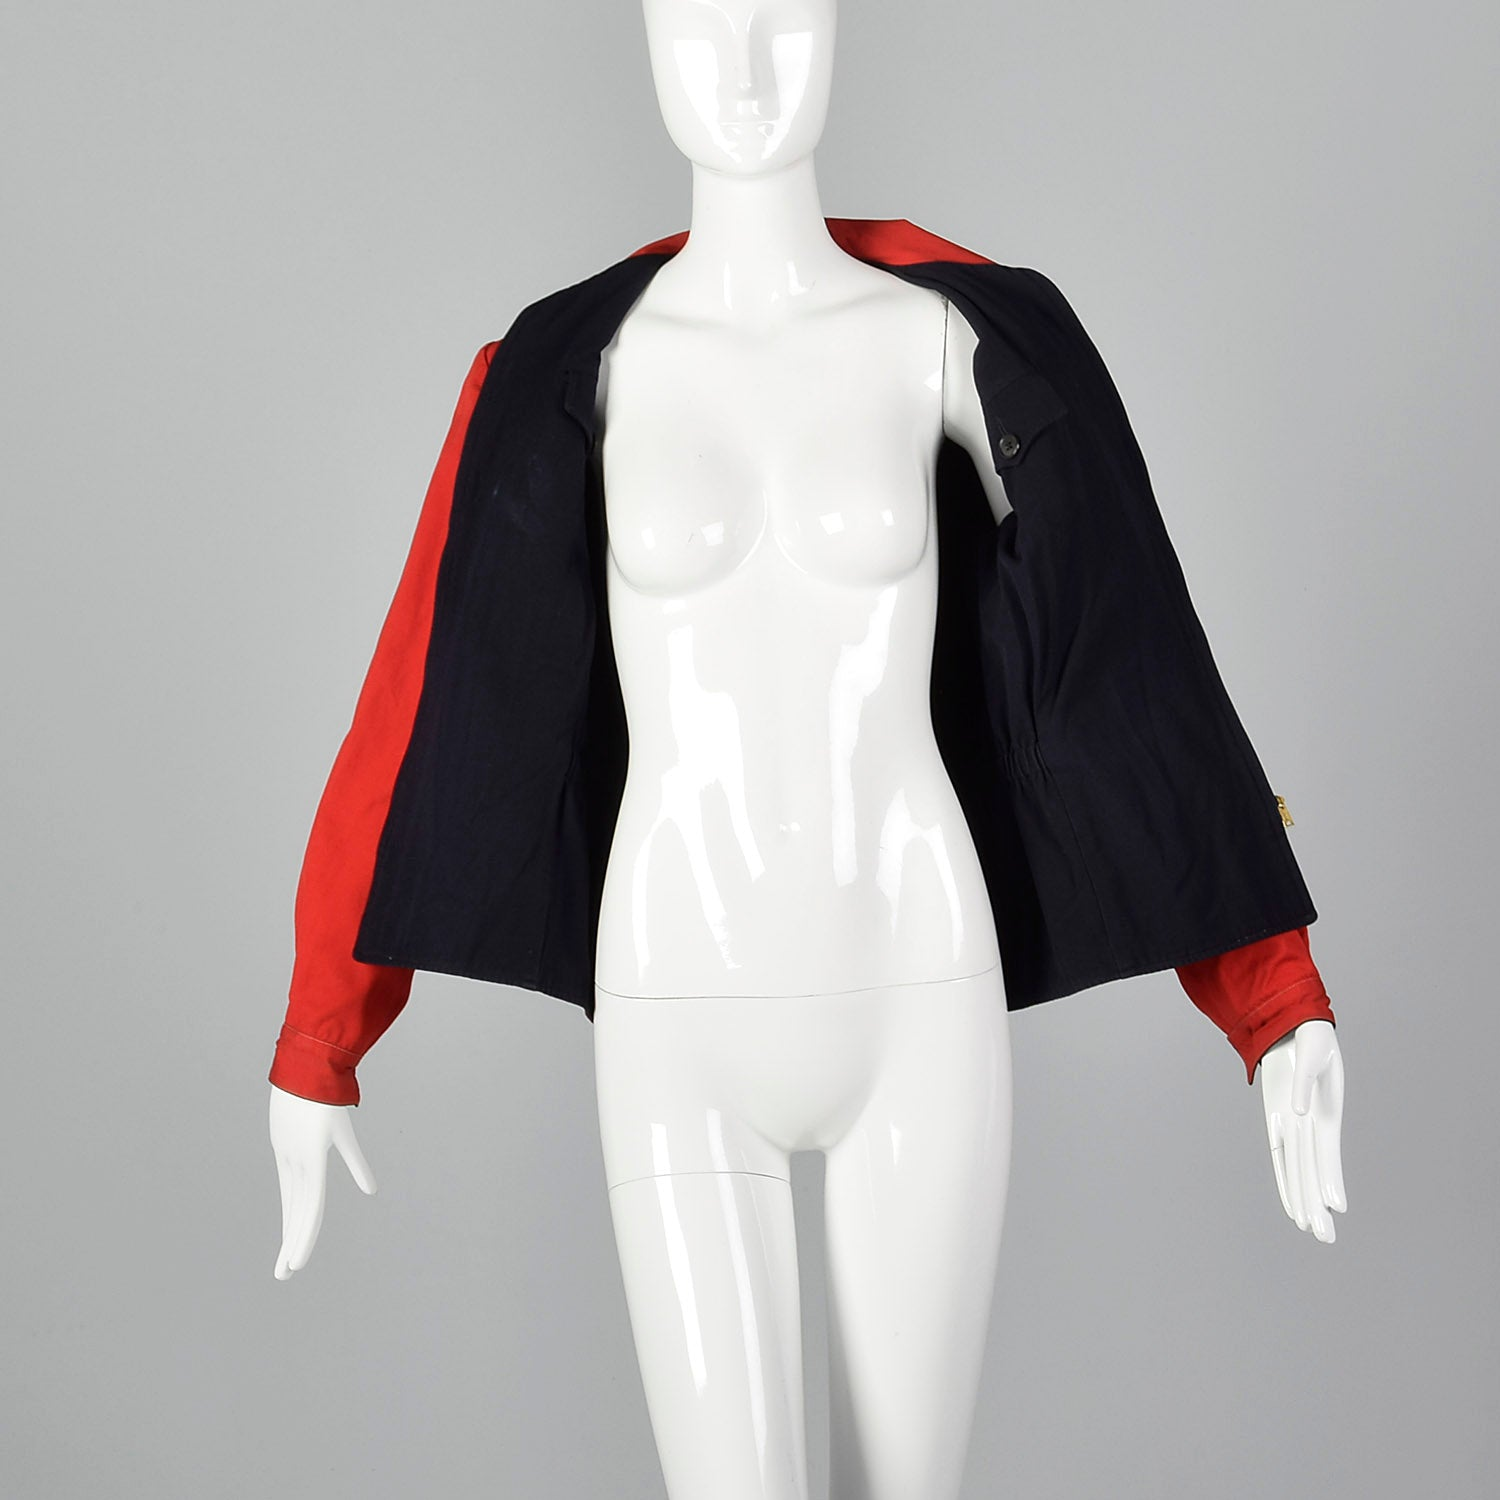 1950s Red and Navy Reversible Jacket with Pockets